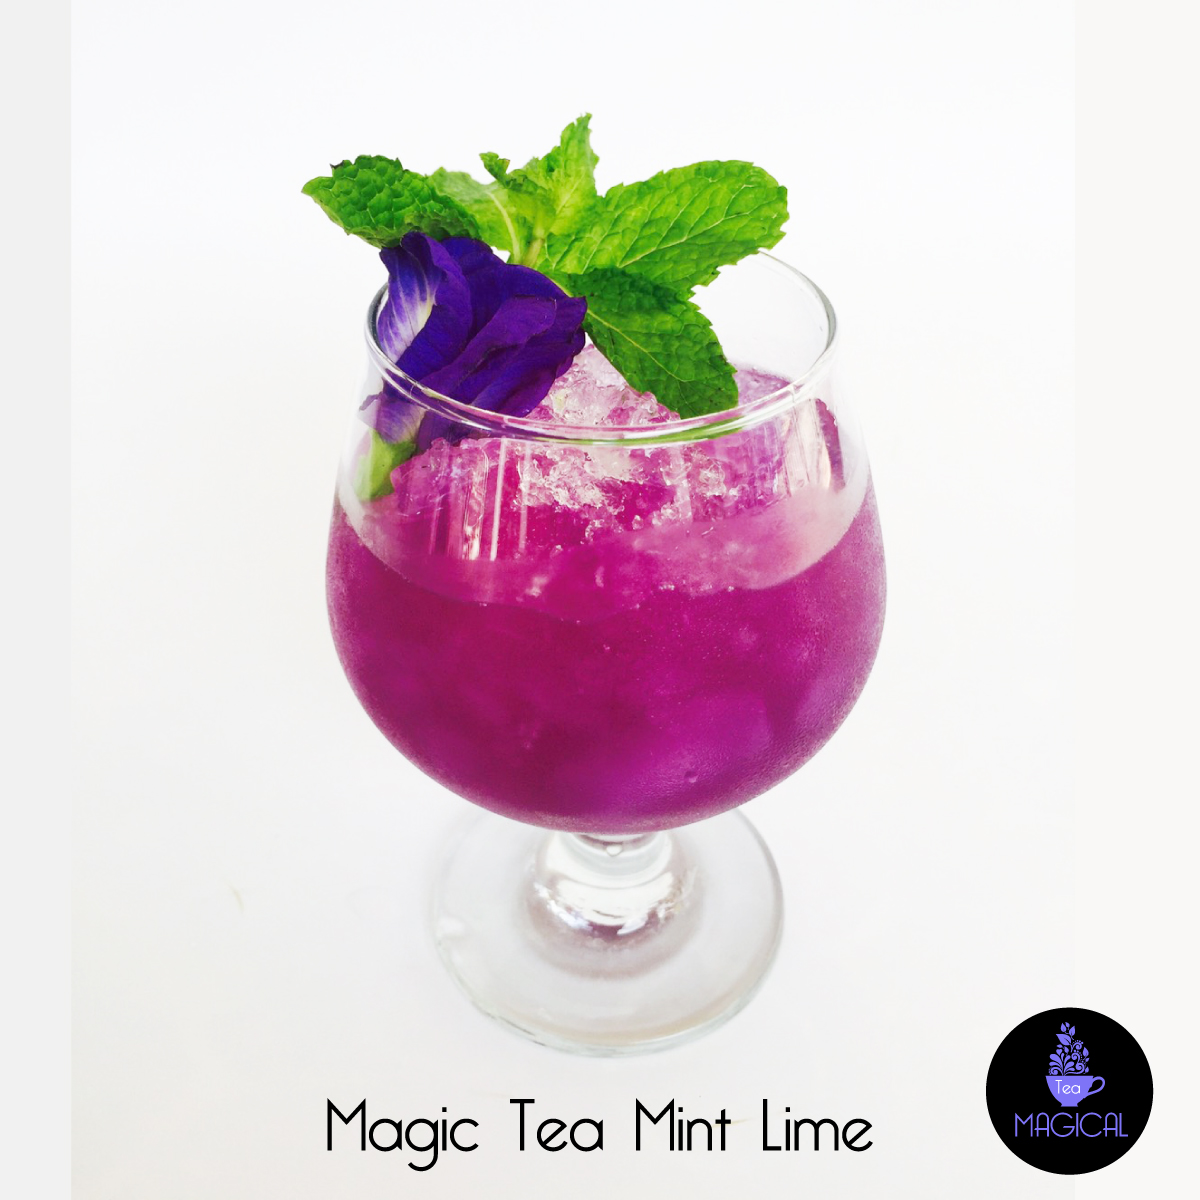 Magic Tea Mint Lime